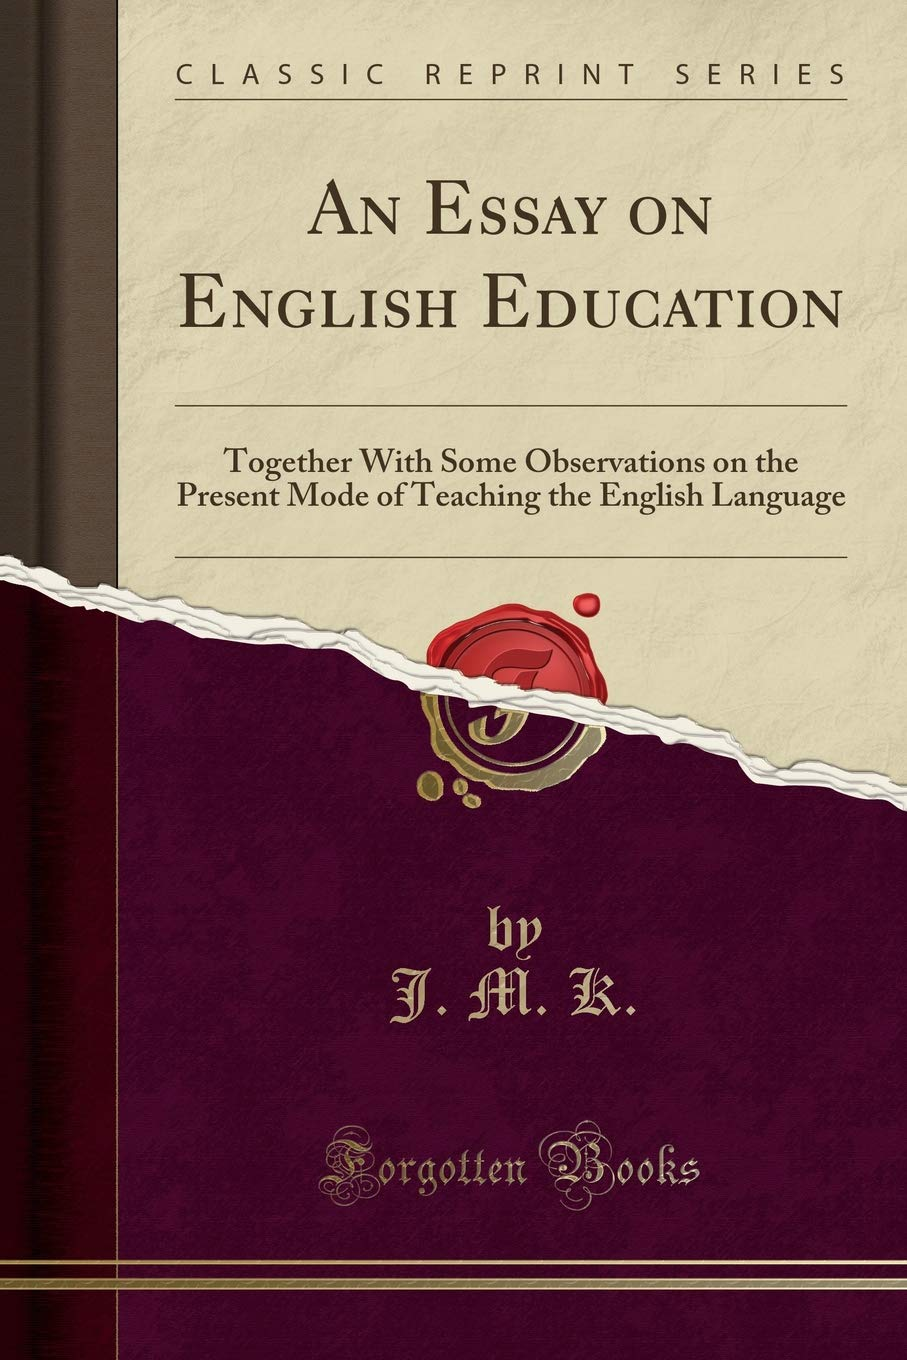 an essay on english education together with some observations on  an essay on english education together with some observations on the  present mode of teaching the english language classic reprint paperback   january